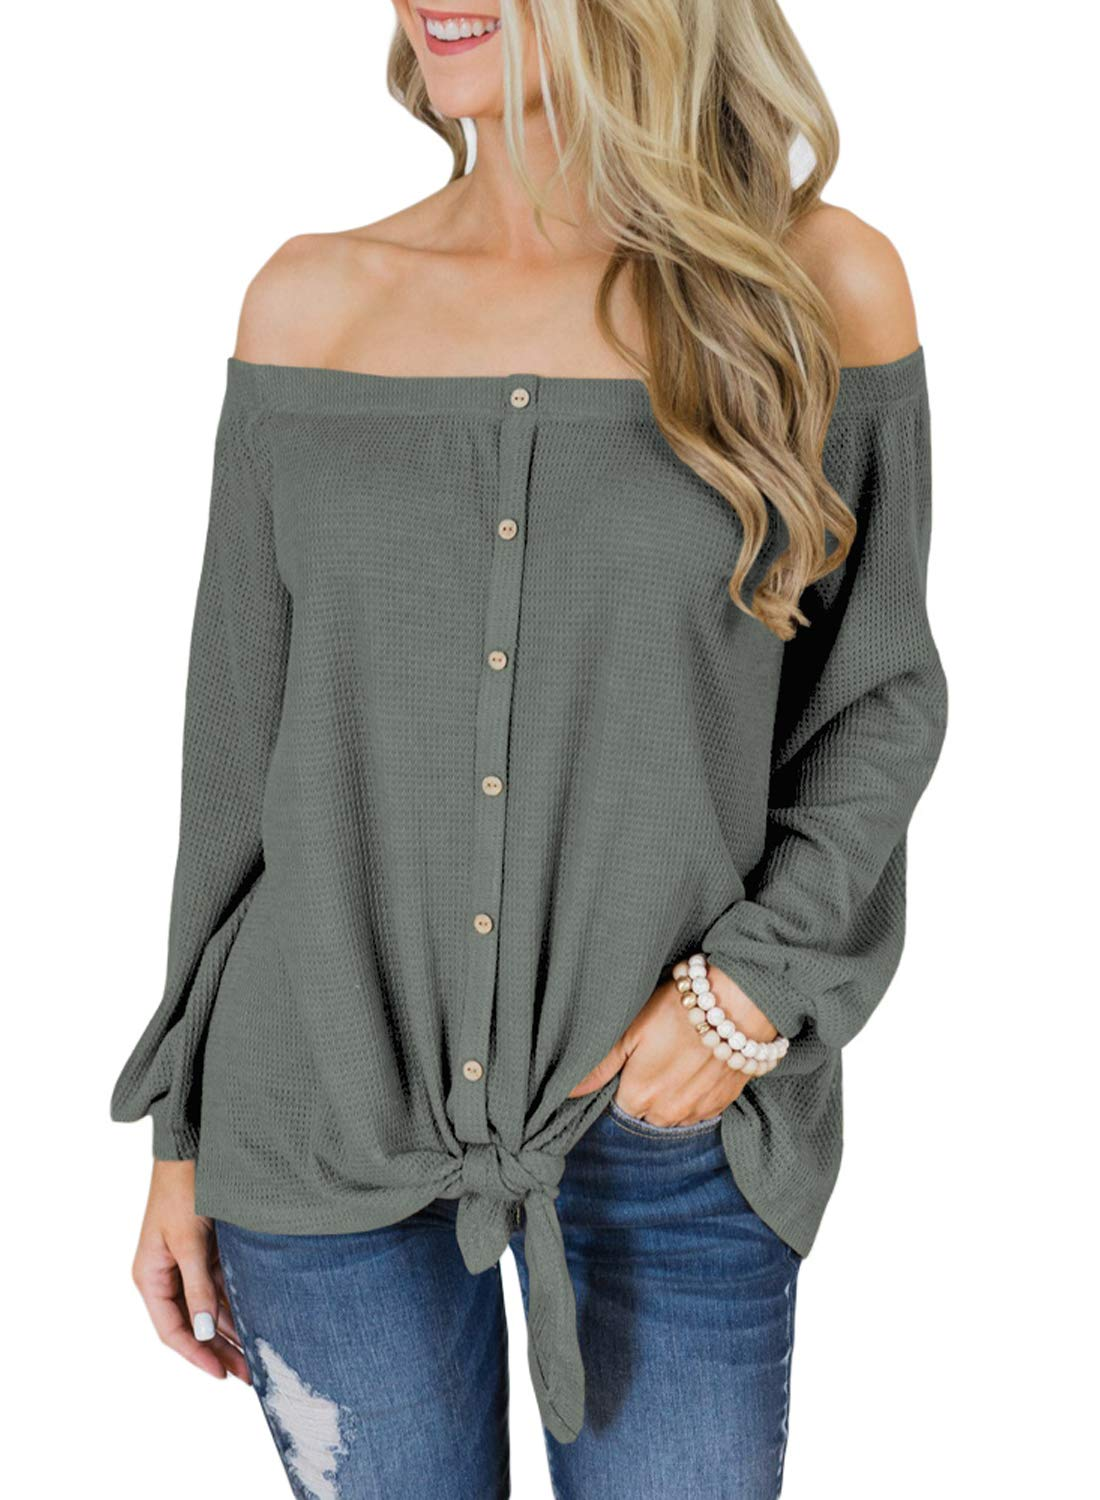 942a3b2c929 Galleon - Asvivid Womens Long Sleeve Off The Shoulder Button Down Tie Knot  Strapless Solid Tee Shirt Blouses Tops S Green